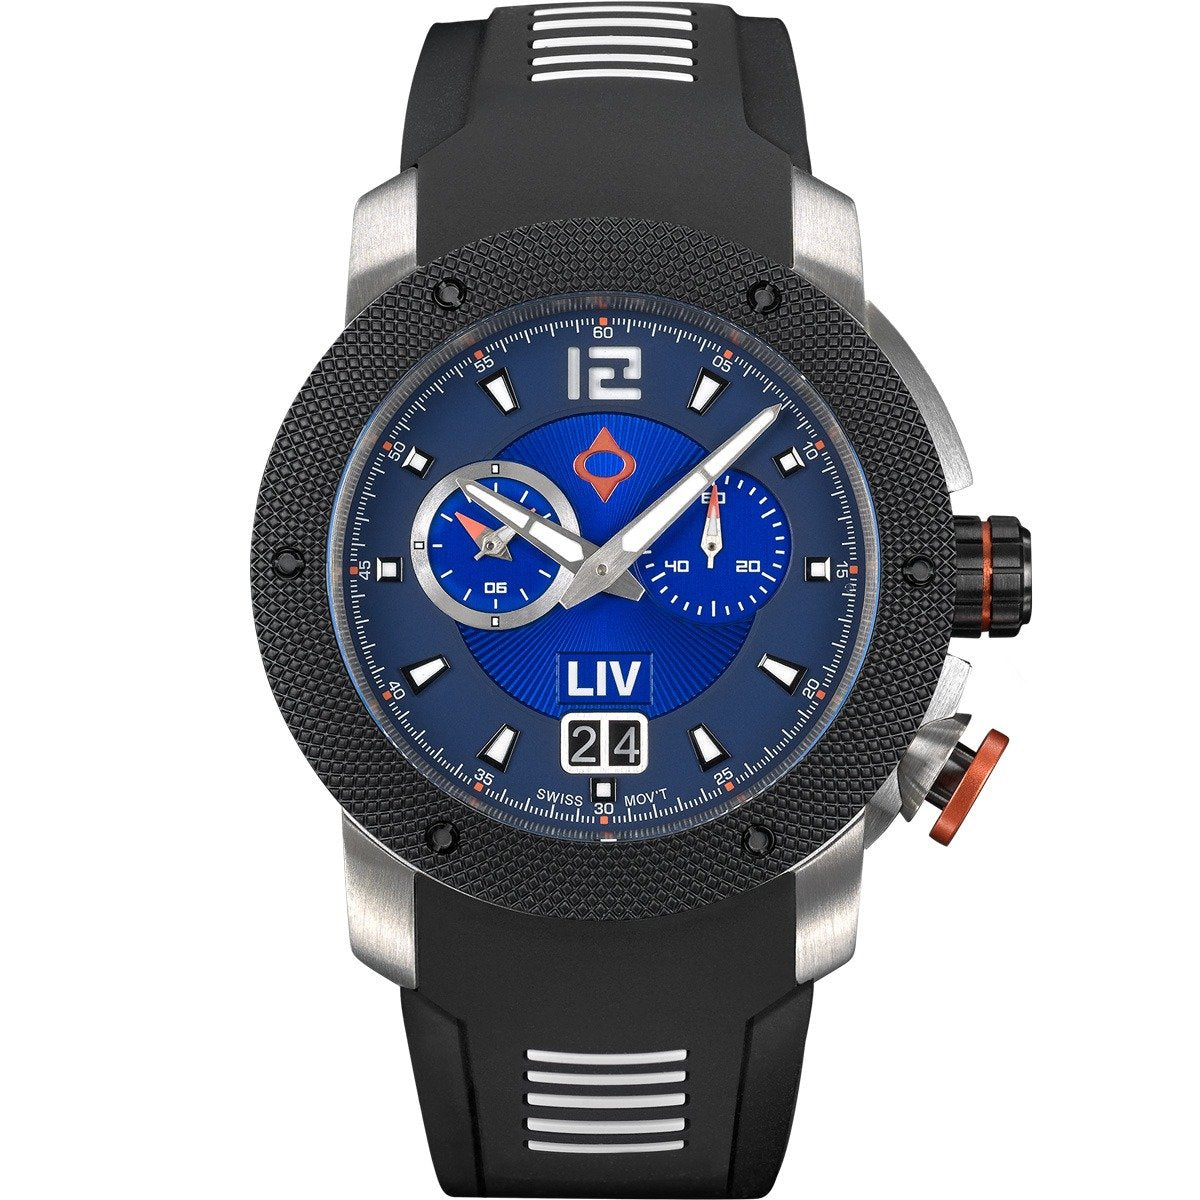 LIV GX Analog Alarm Blue Limited Edition - LIV Swiss Watches